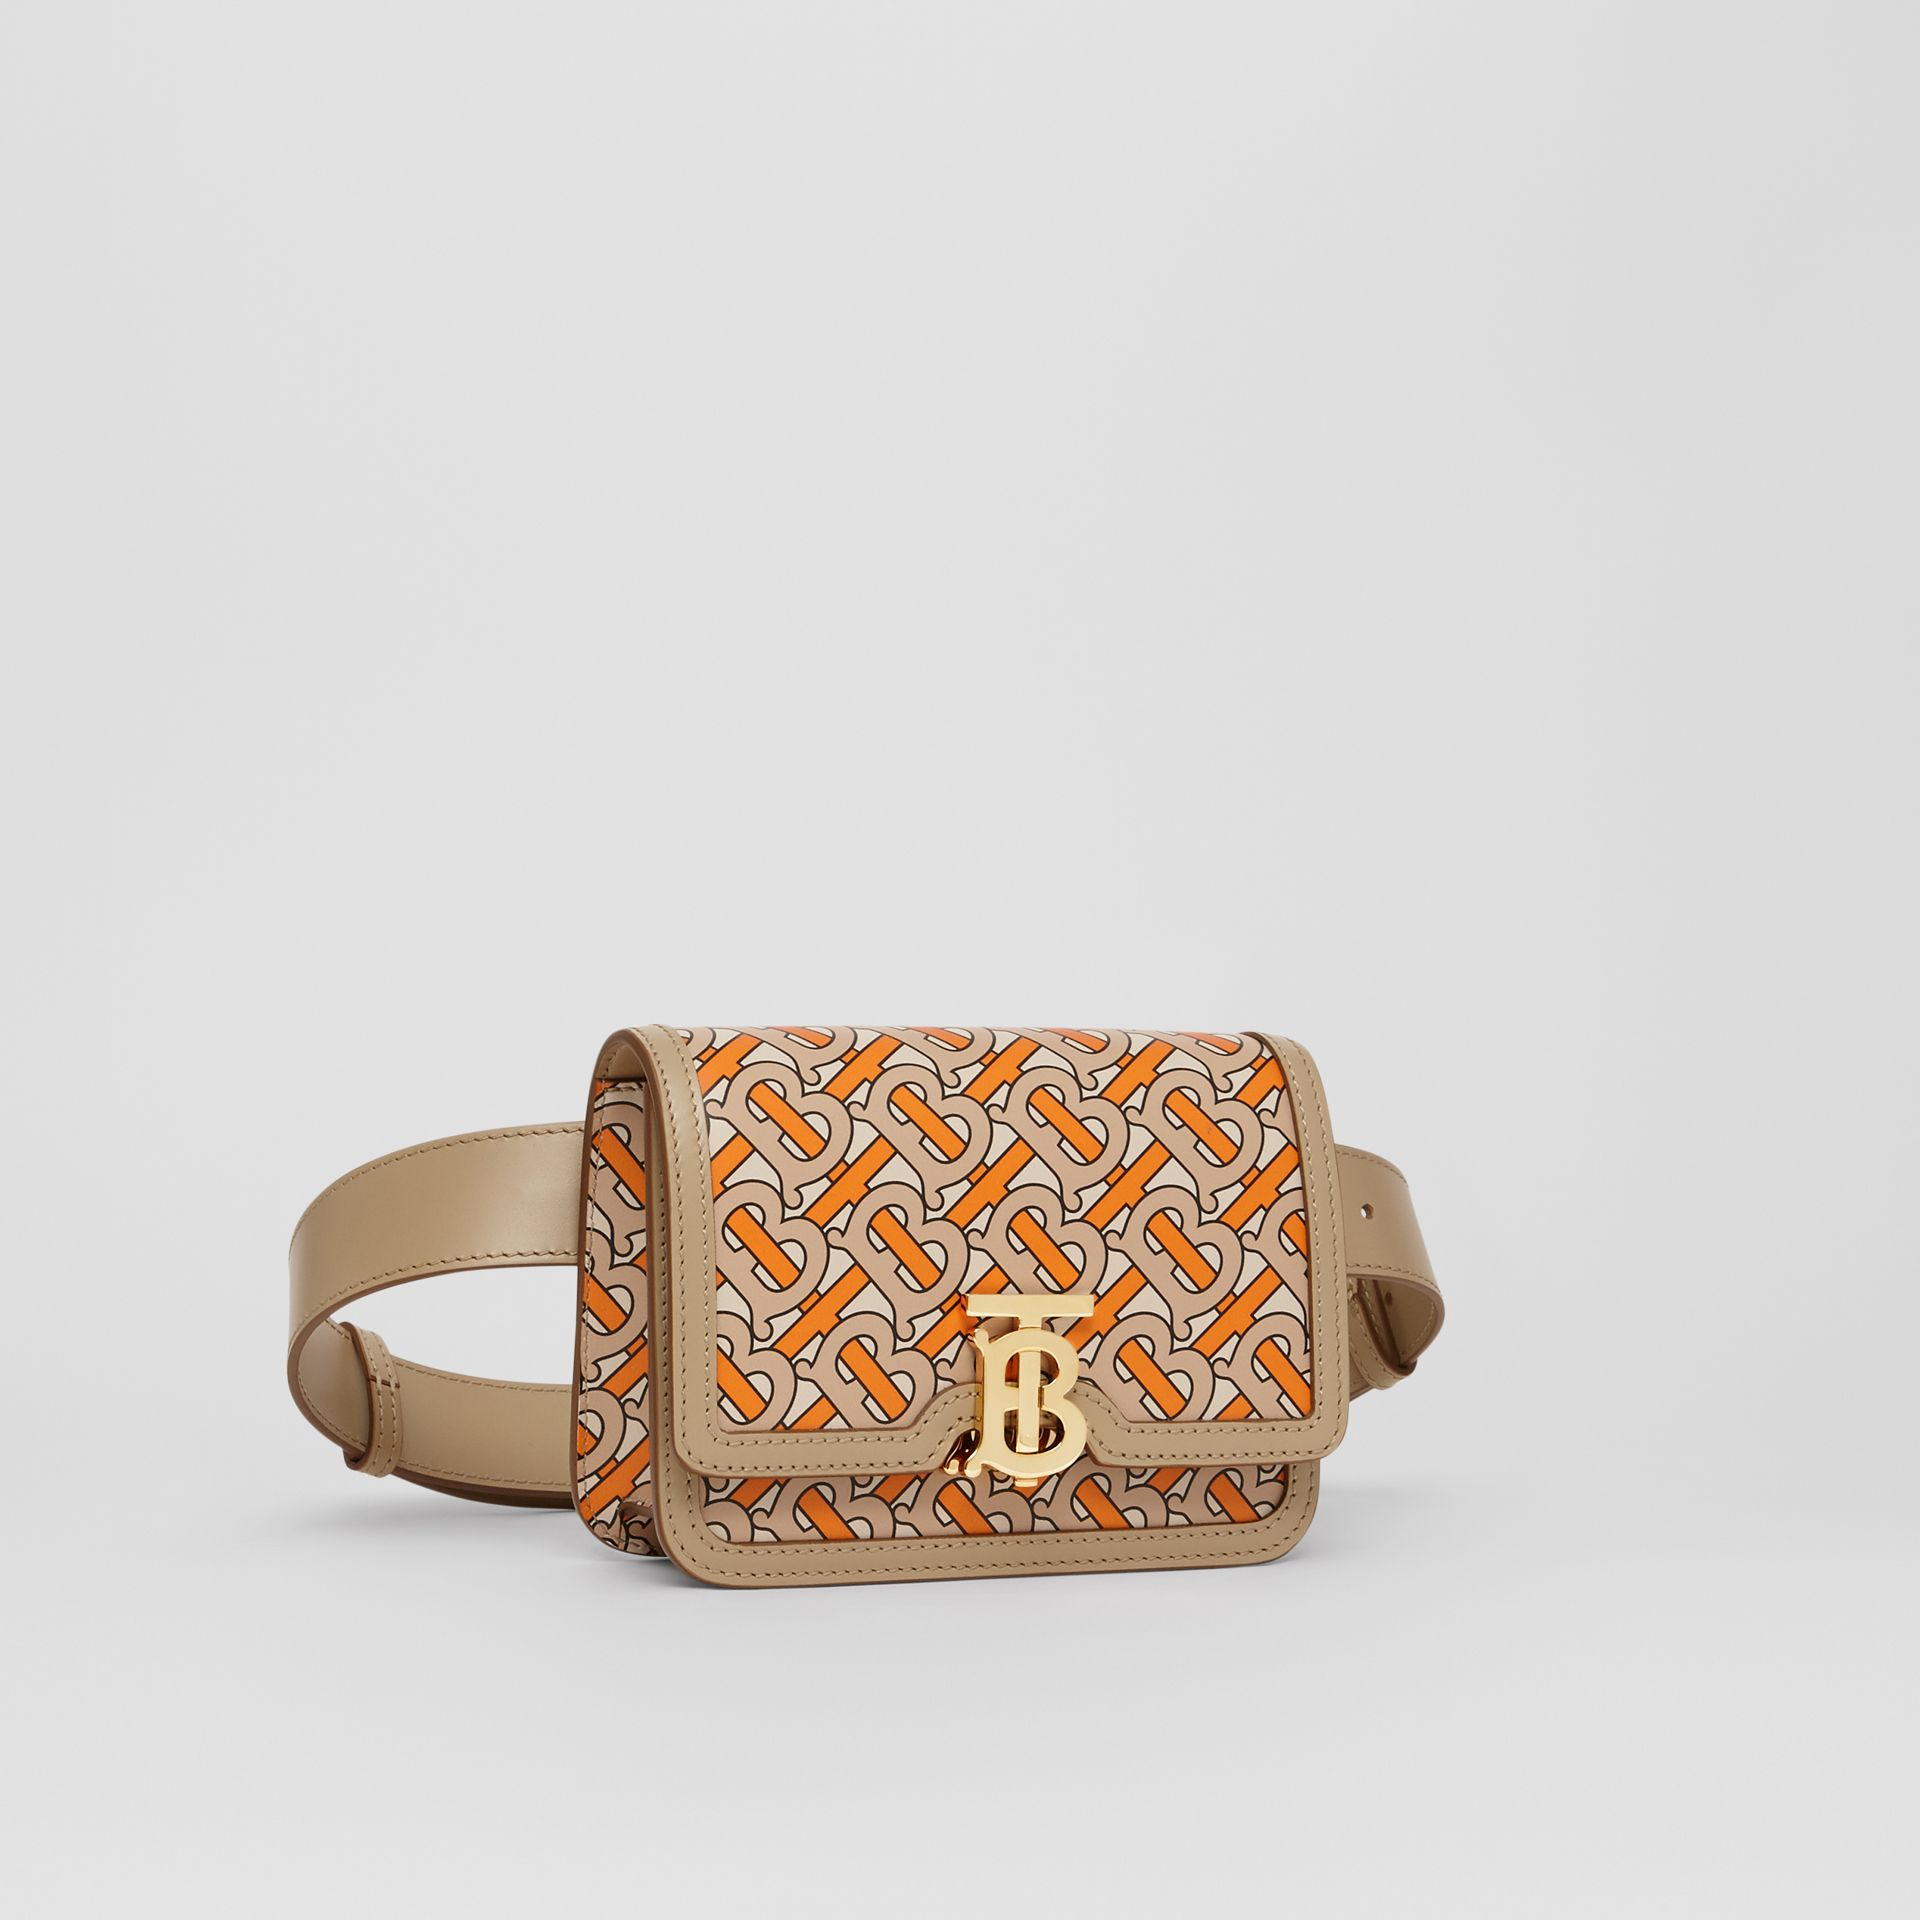 Belted Monogram Print Leather TB Bag in Bright Orange - Women | Burberry Australia - gallery image 5